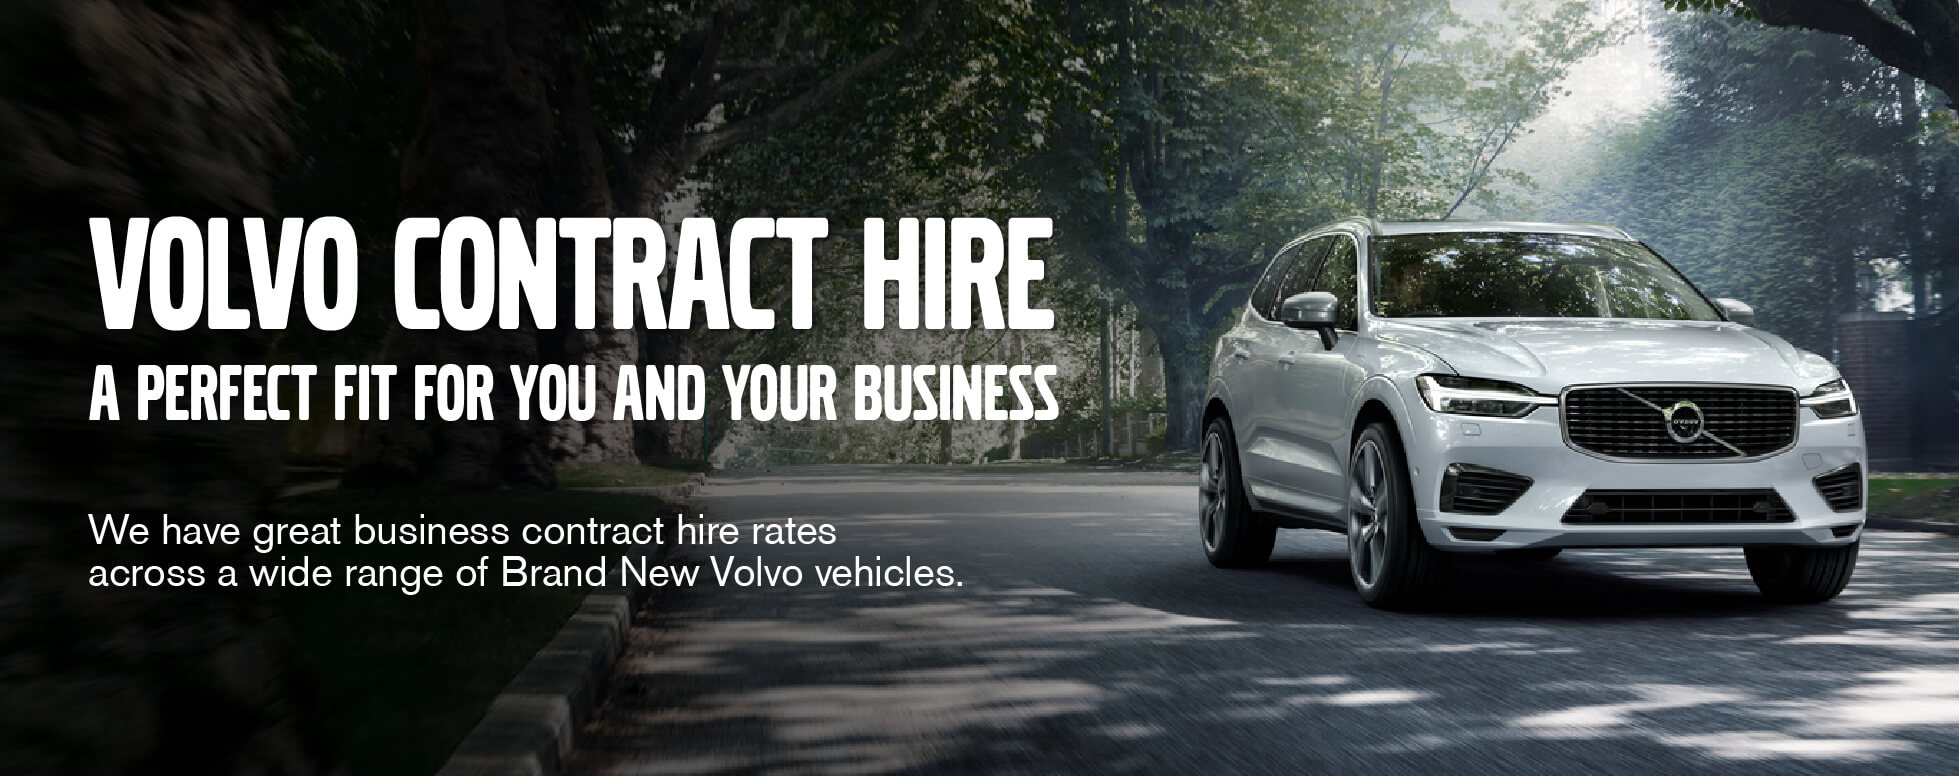 Volvo Contract Hire